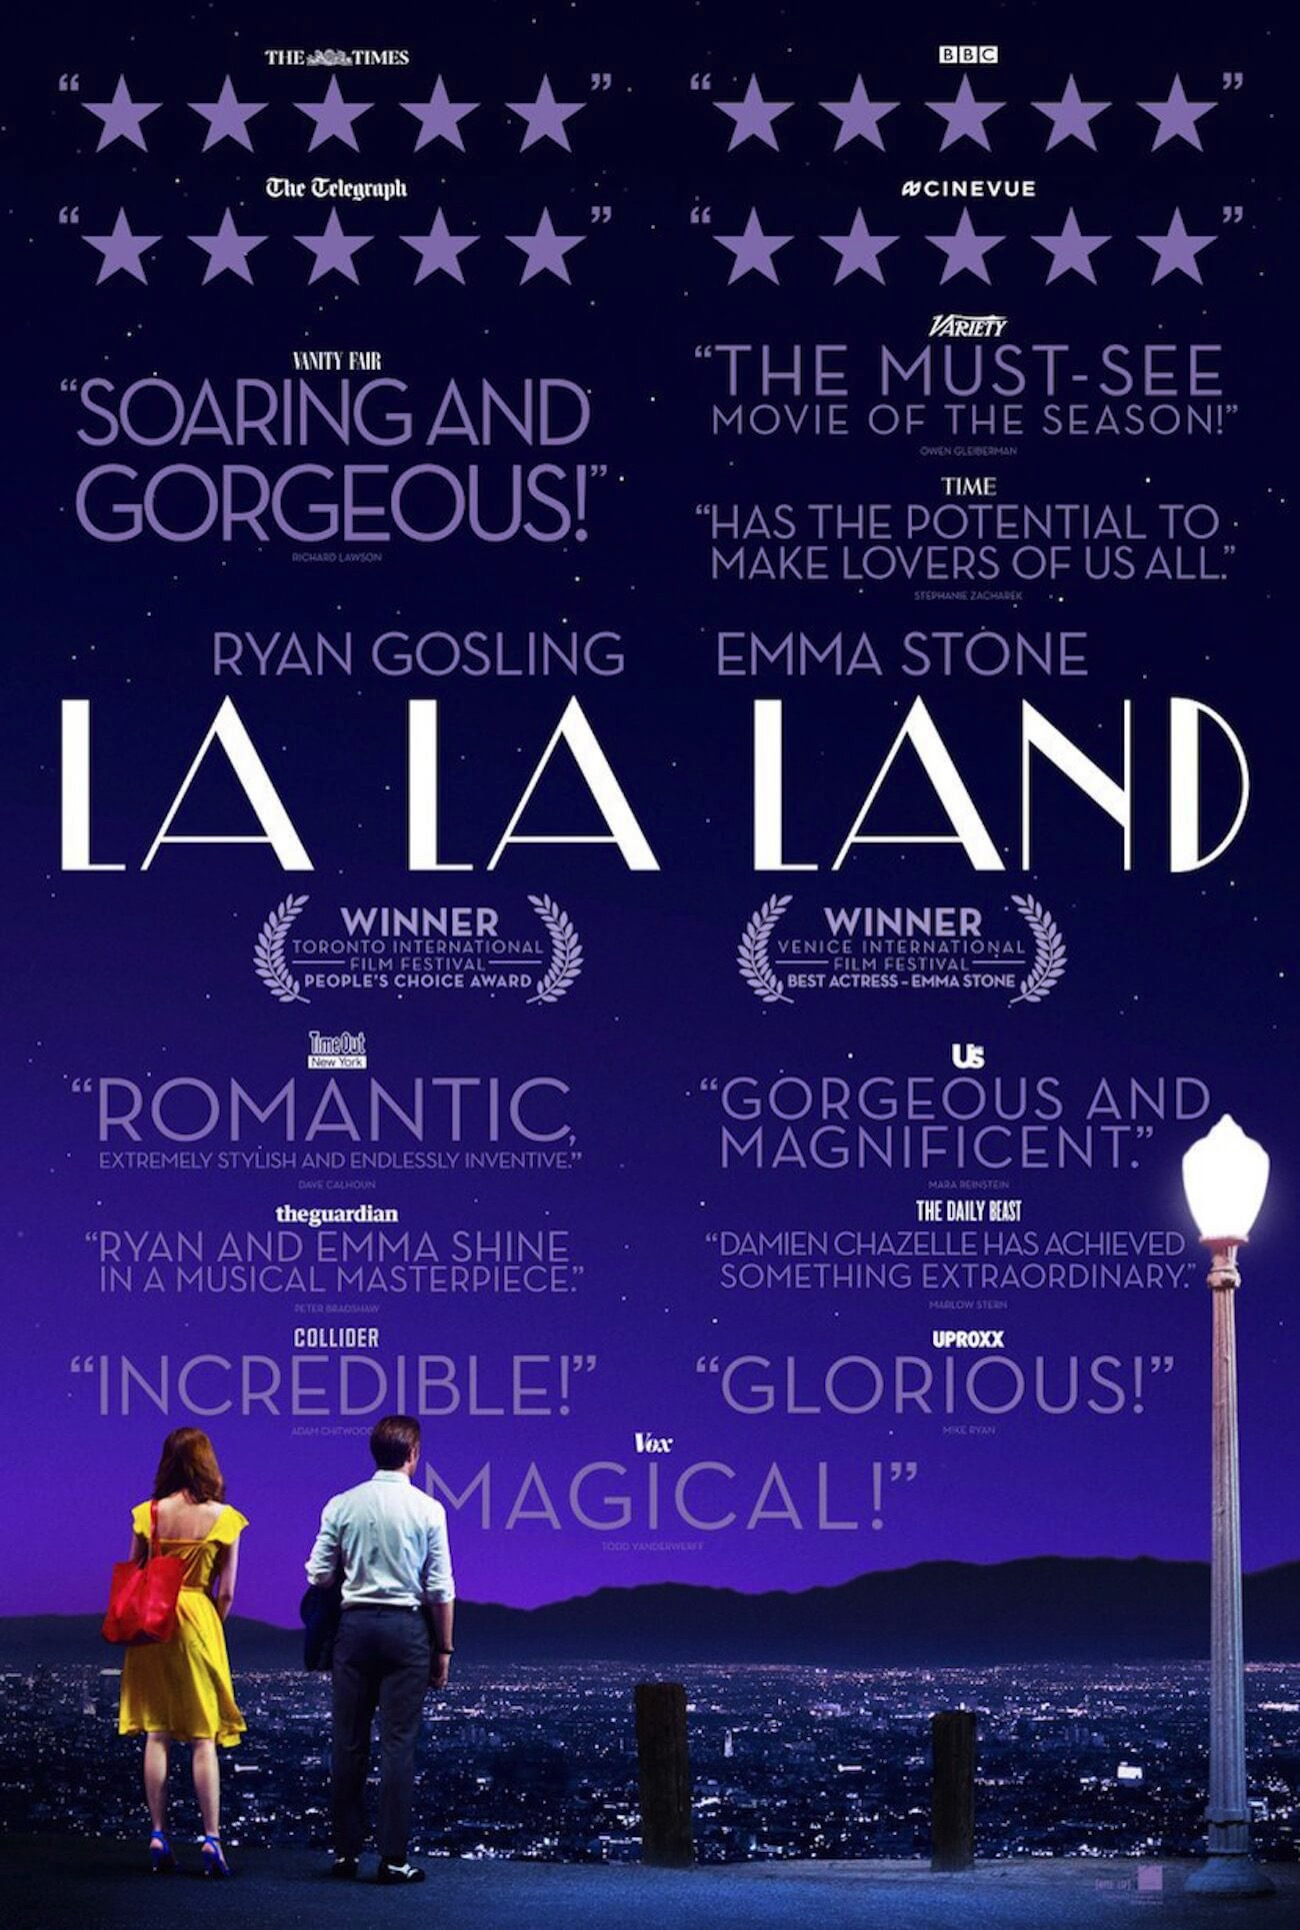 La la land poster blurbs